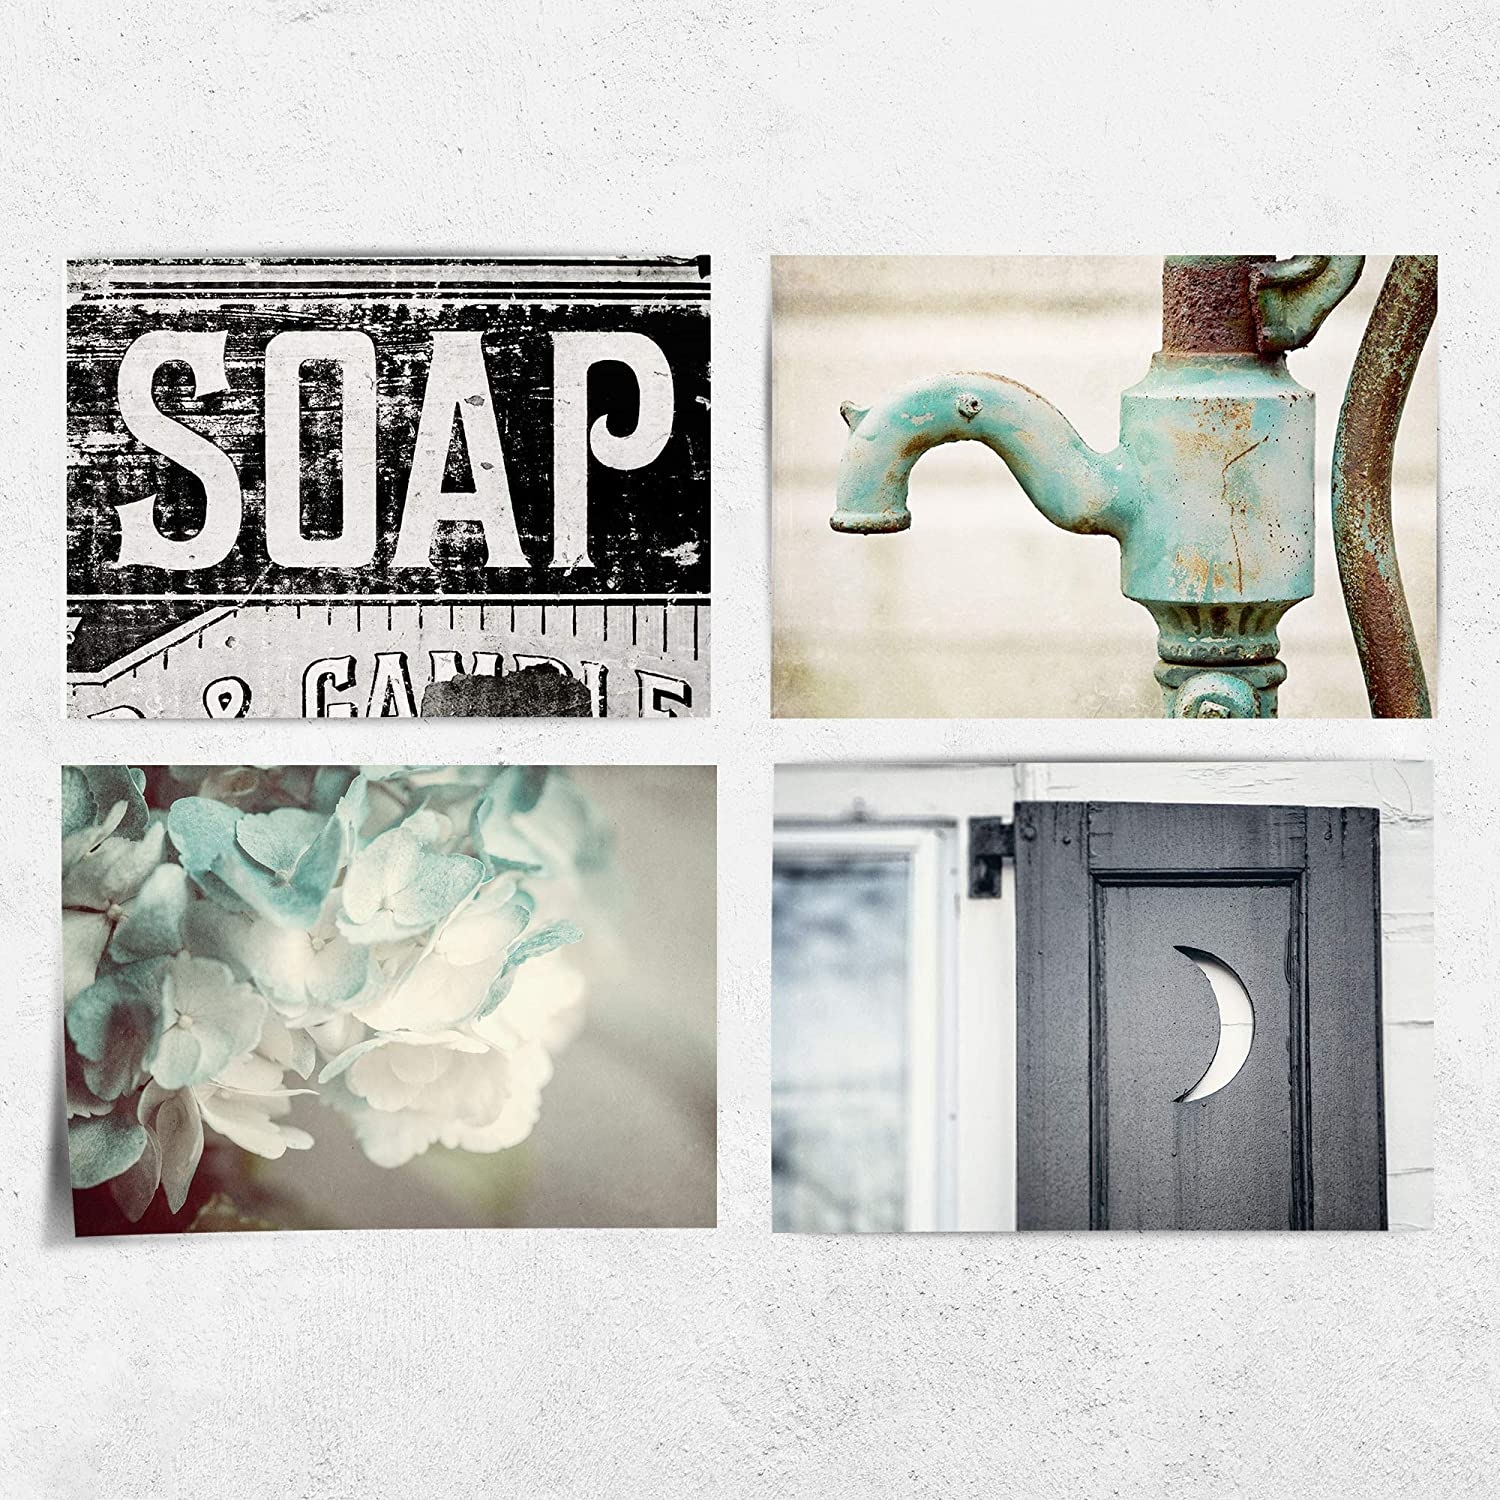 Amazon Com Rustic Farmhouse Bathroom Wall Decor Set Of 4 5x7 Photography Art Prints Not Framed Cottage Shabby Chic Bath Pictures In Aqua Black And Teal Fba45 Handmade